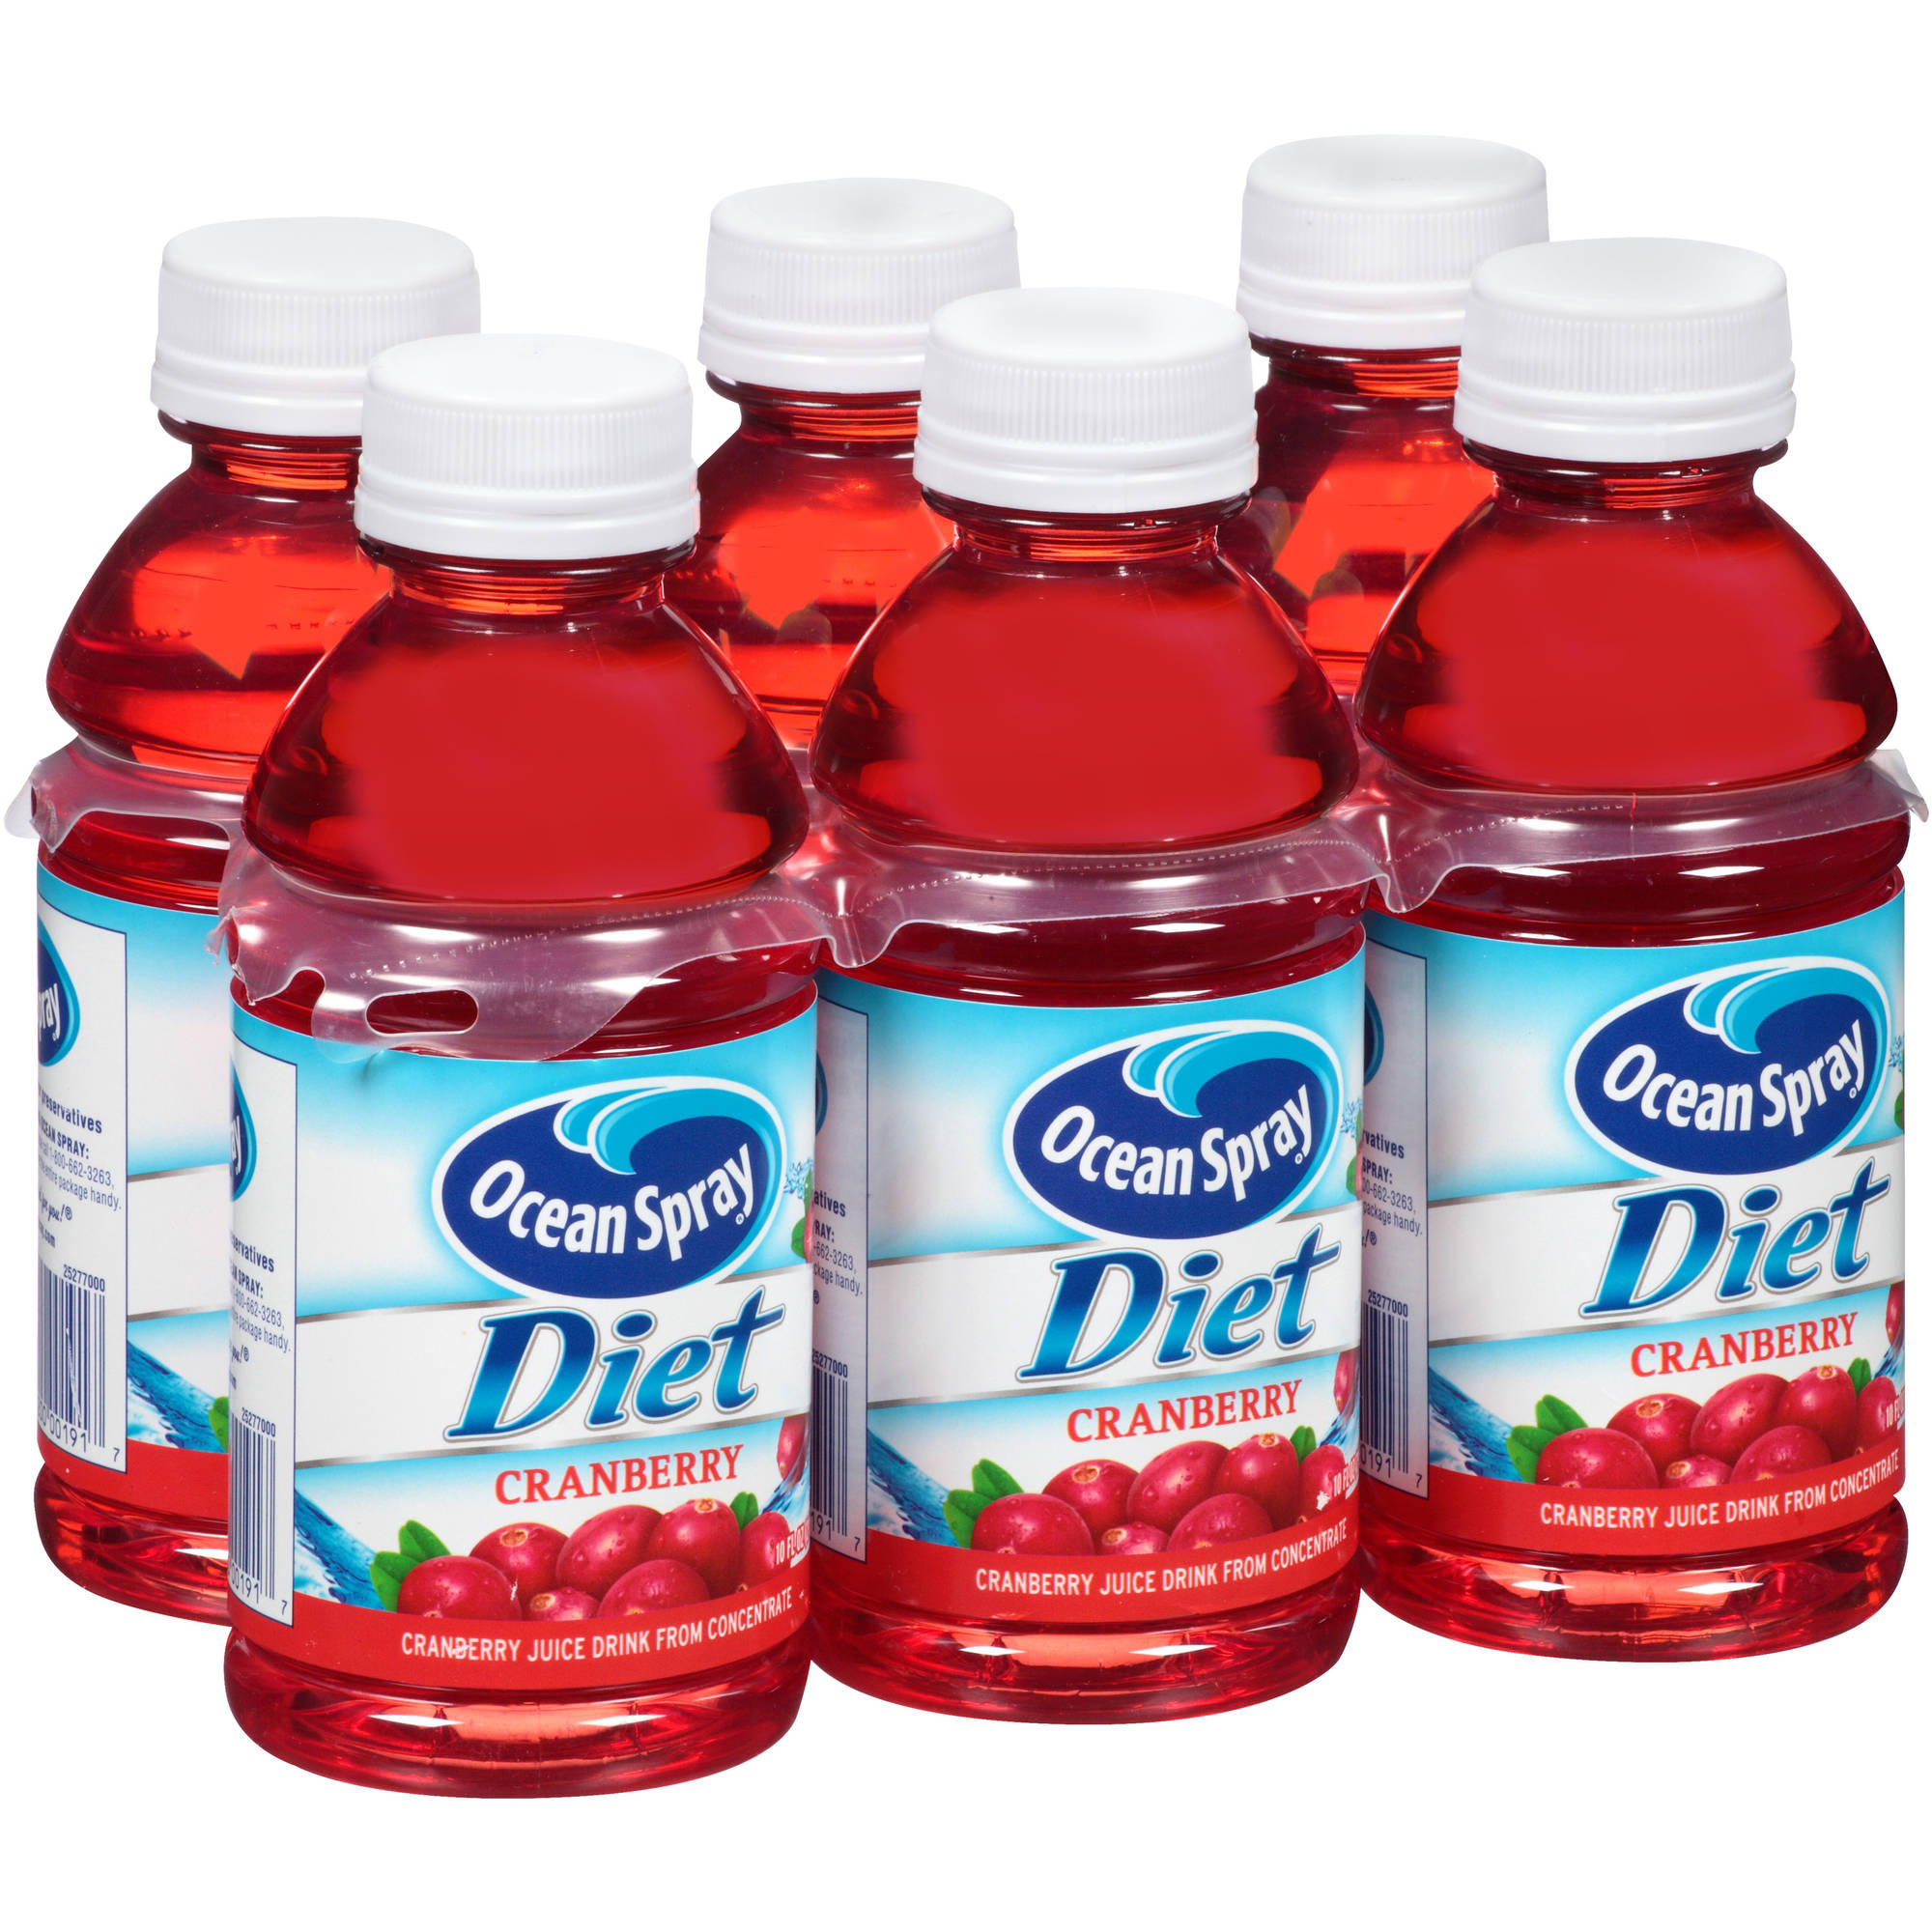 Ocean Spray Diet Cranberry Spray Juice, 6 Ct/60 Fl Oz